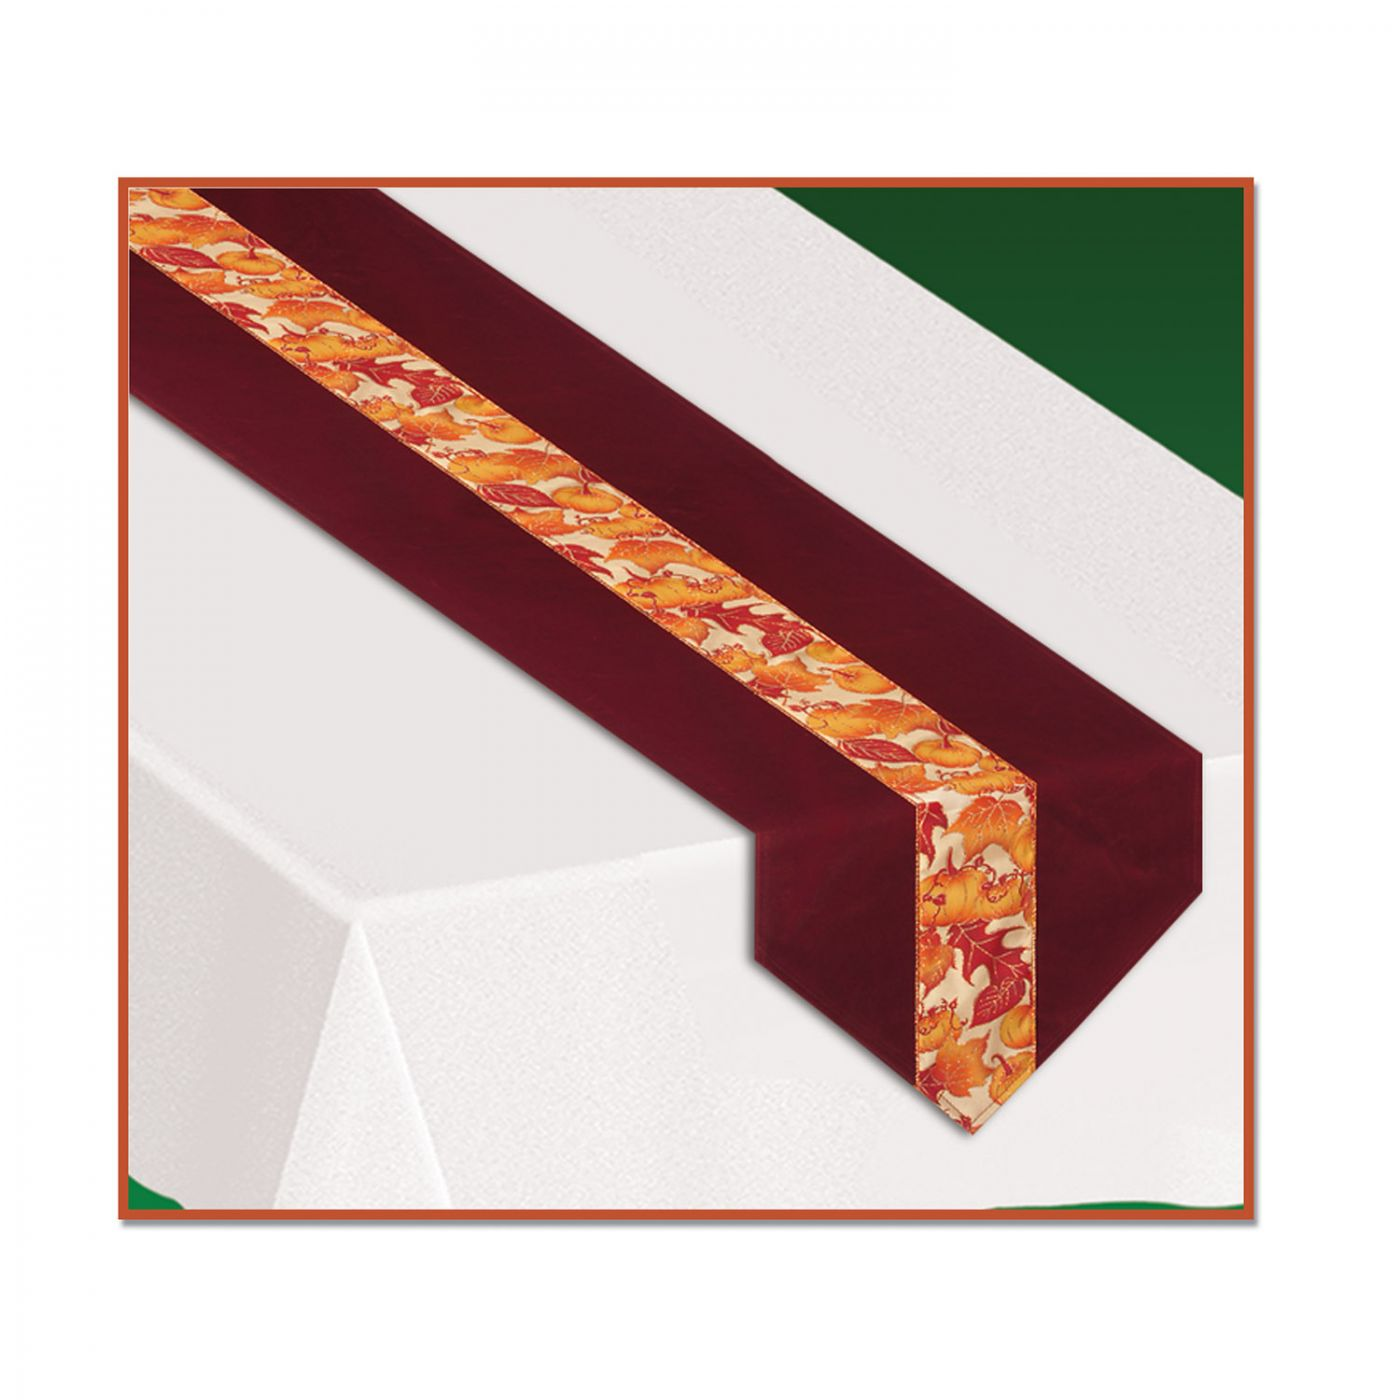 Autumn Leaves Fabric Table Runner (6) image